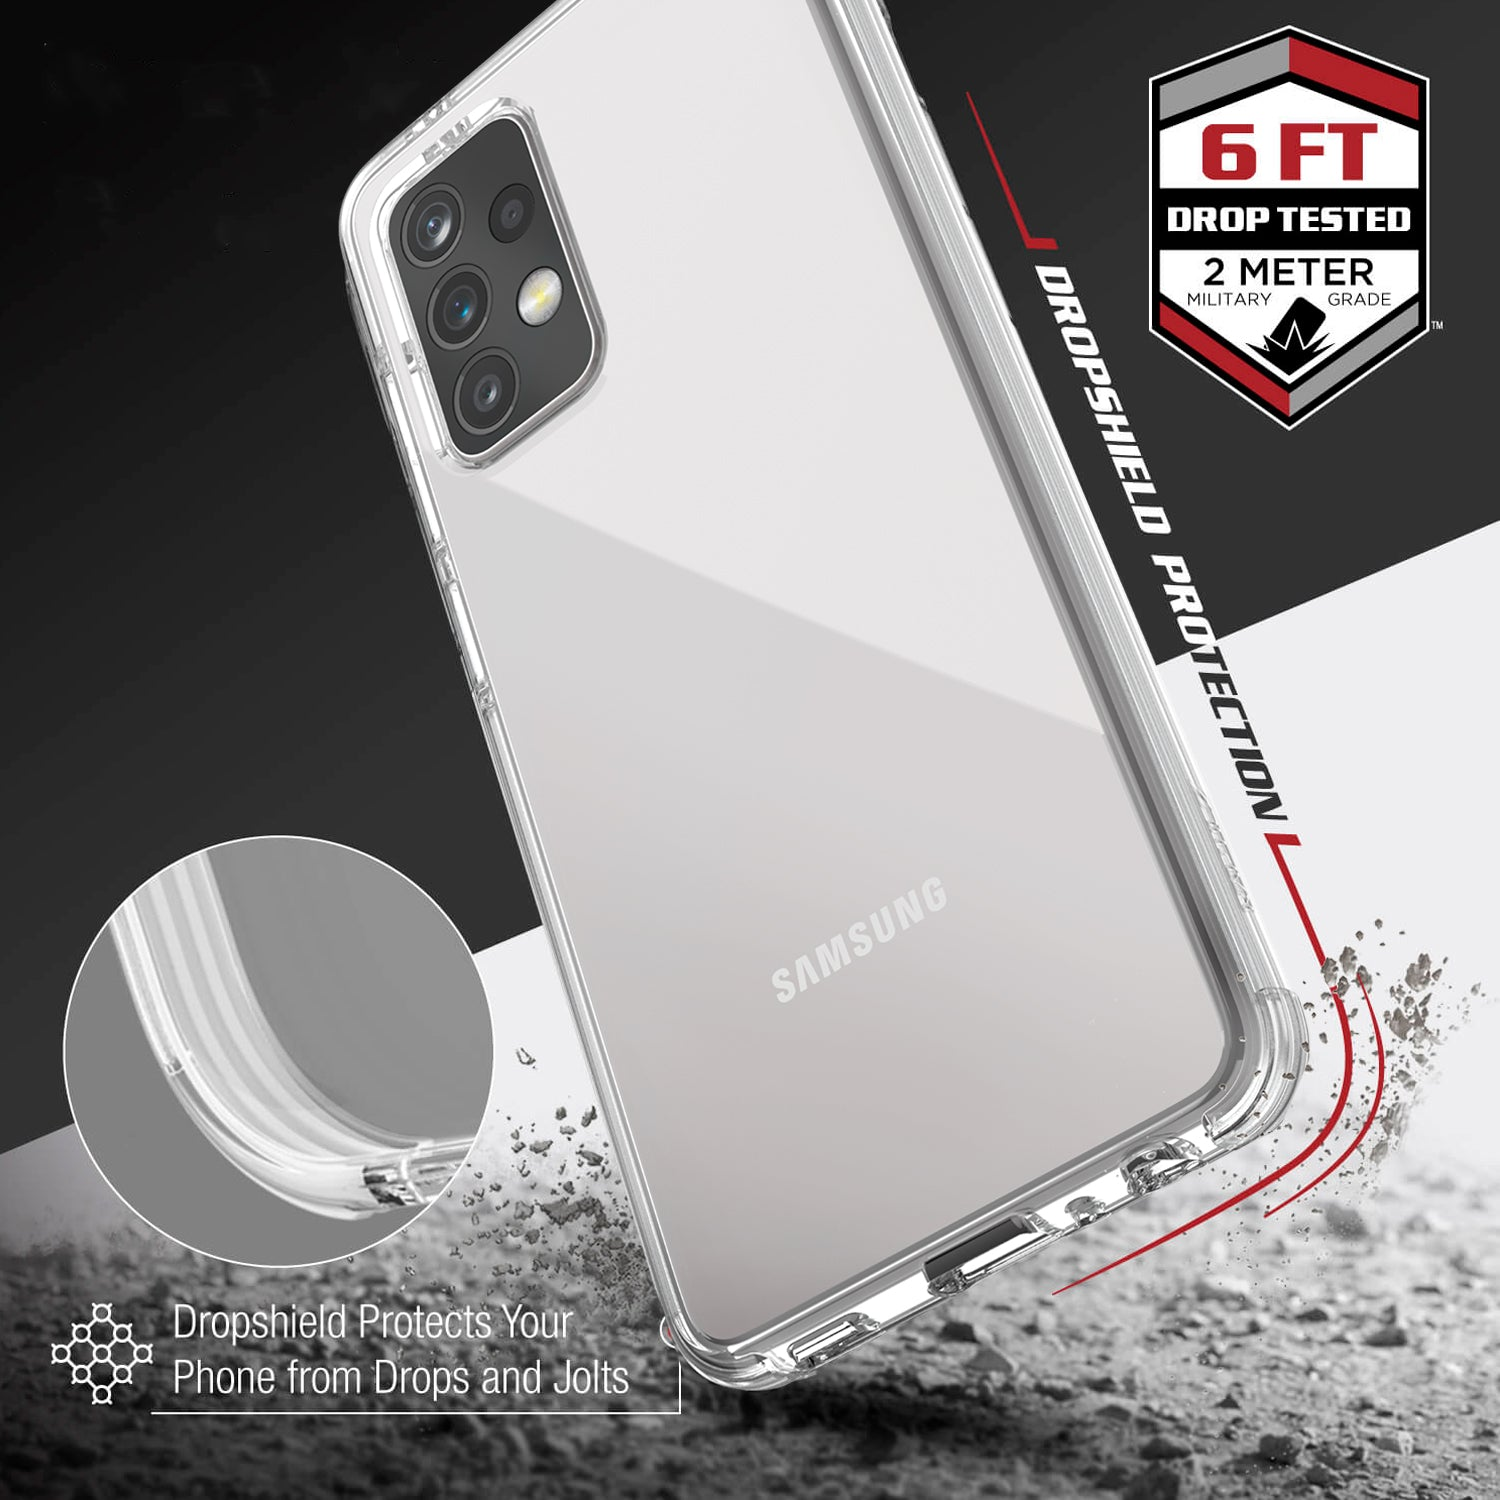 Showing the back of a Samsung Galaxy A52 in a Raptic Clear case with 2 metre drop protection